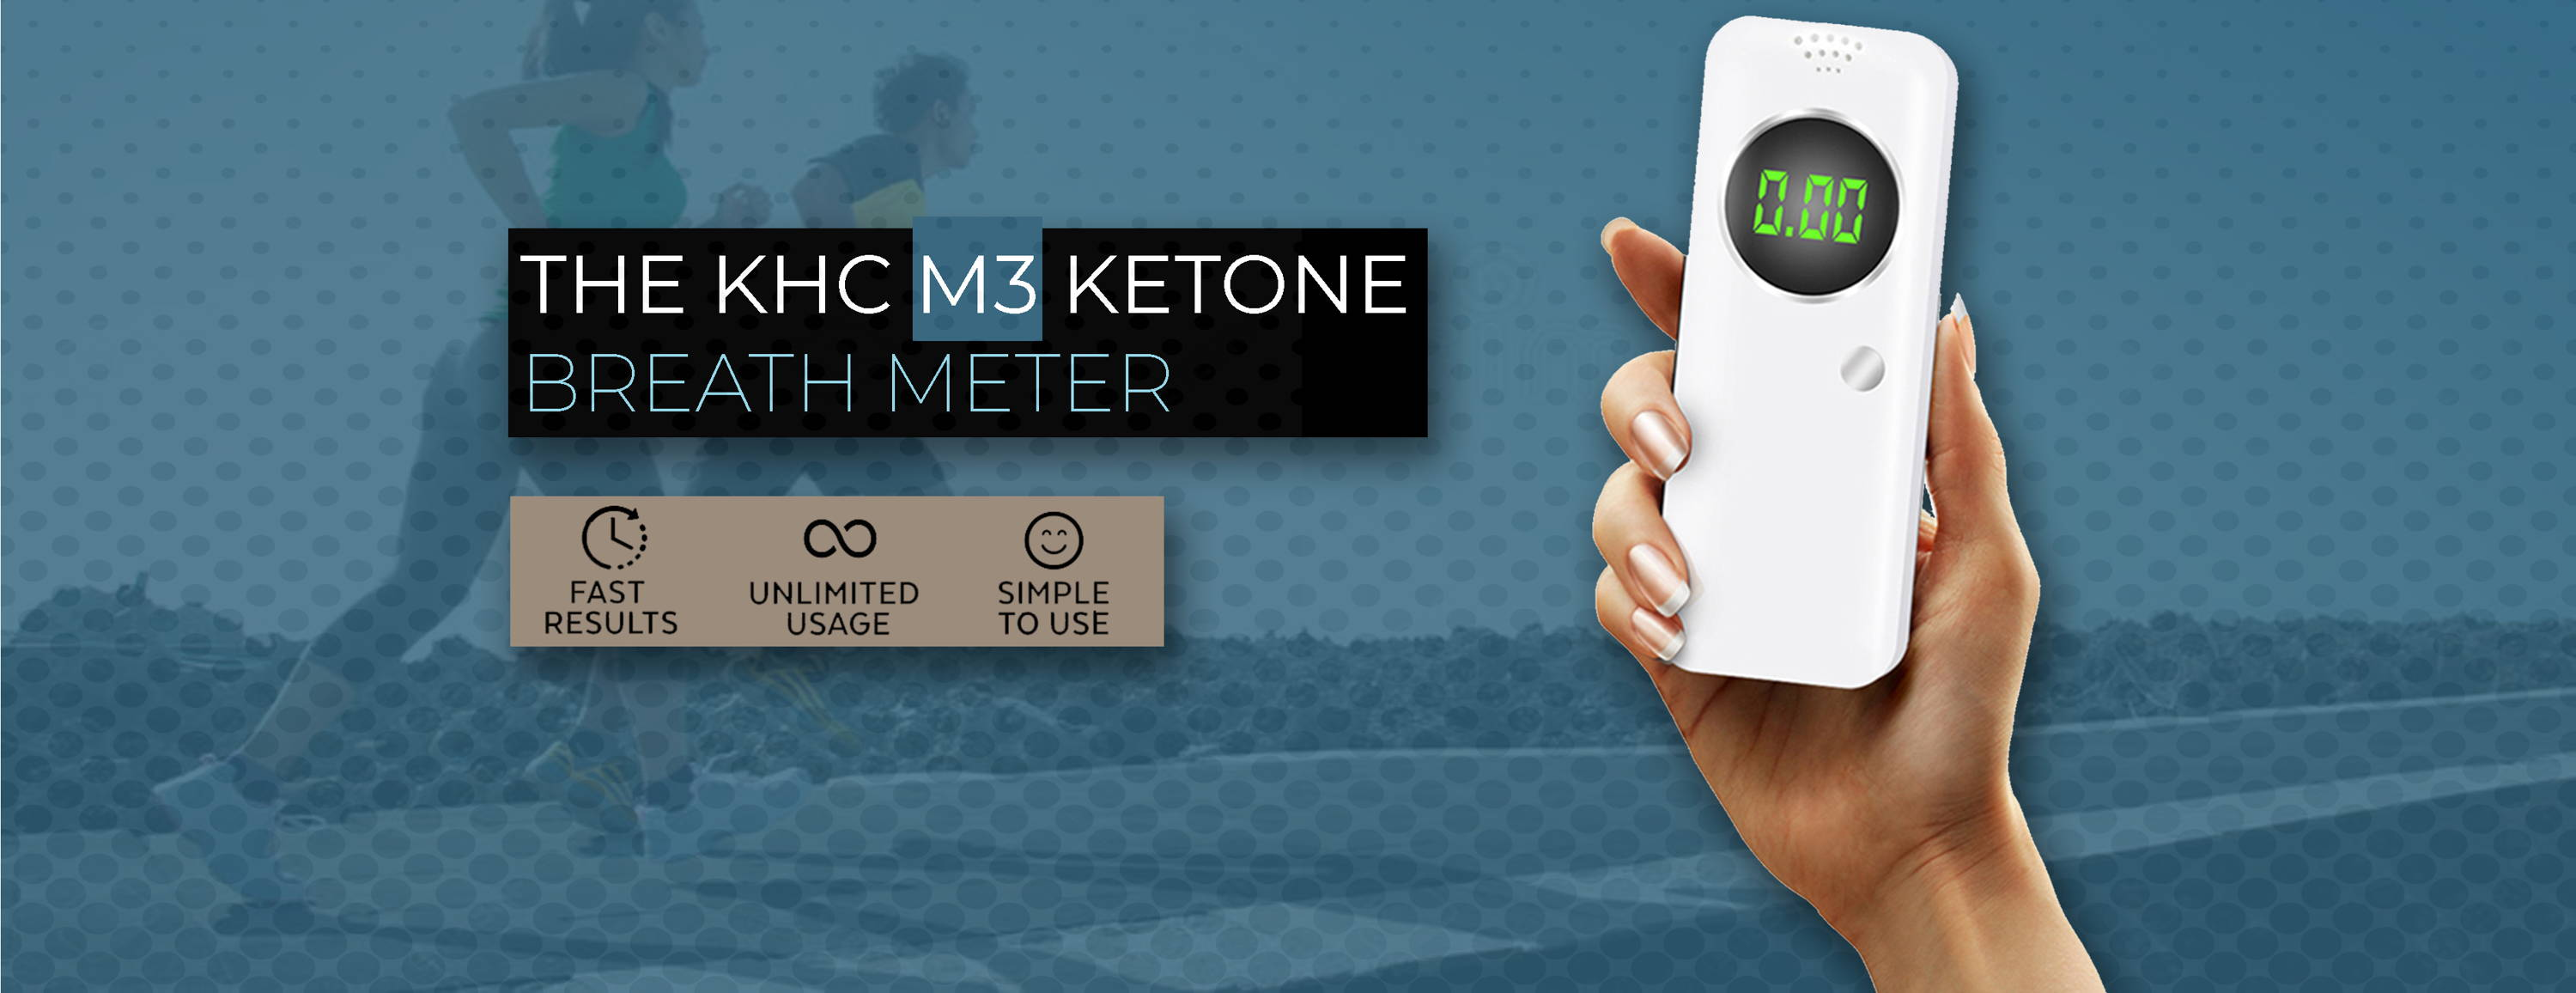 KHC M3 Ketone Breath Mete